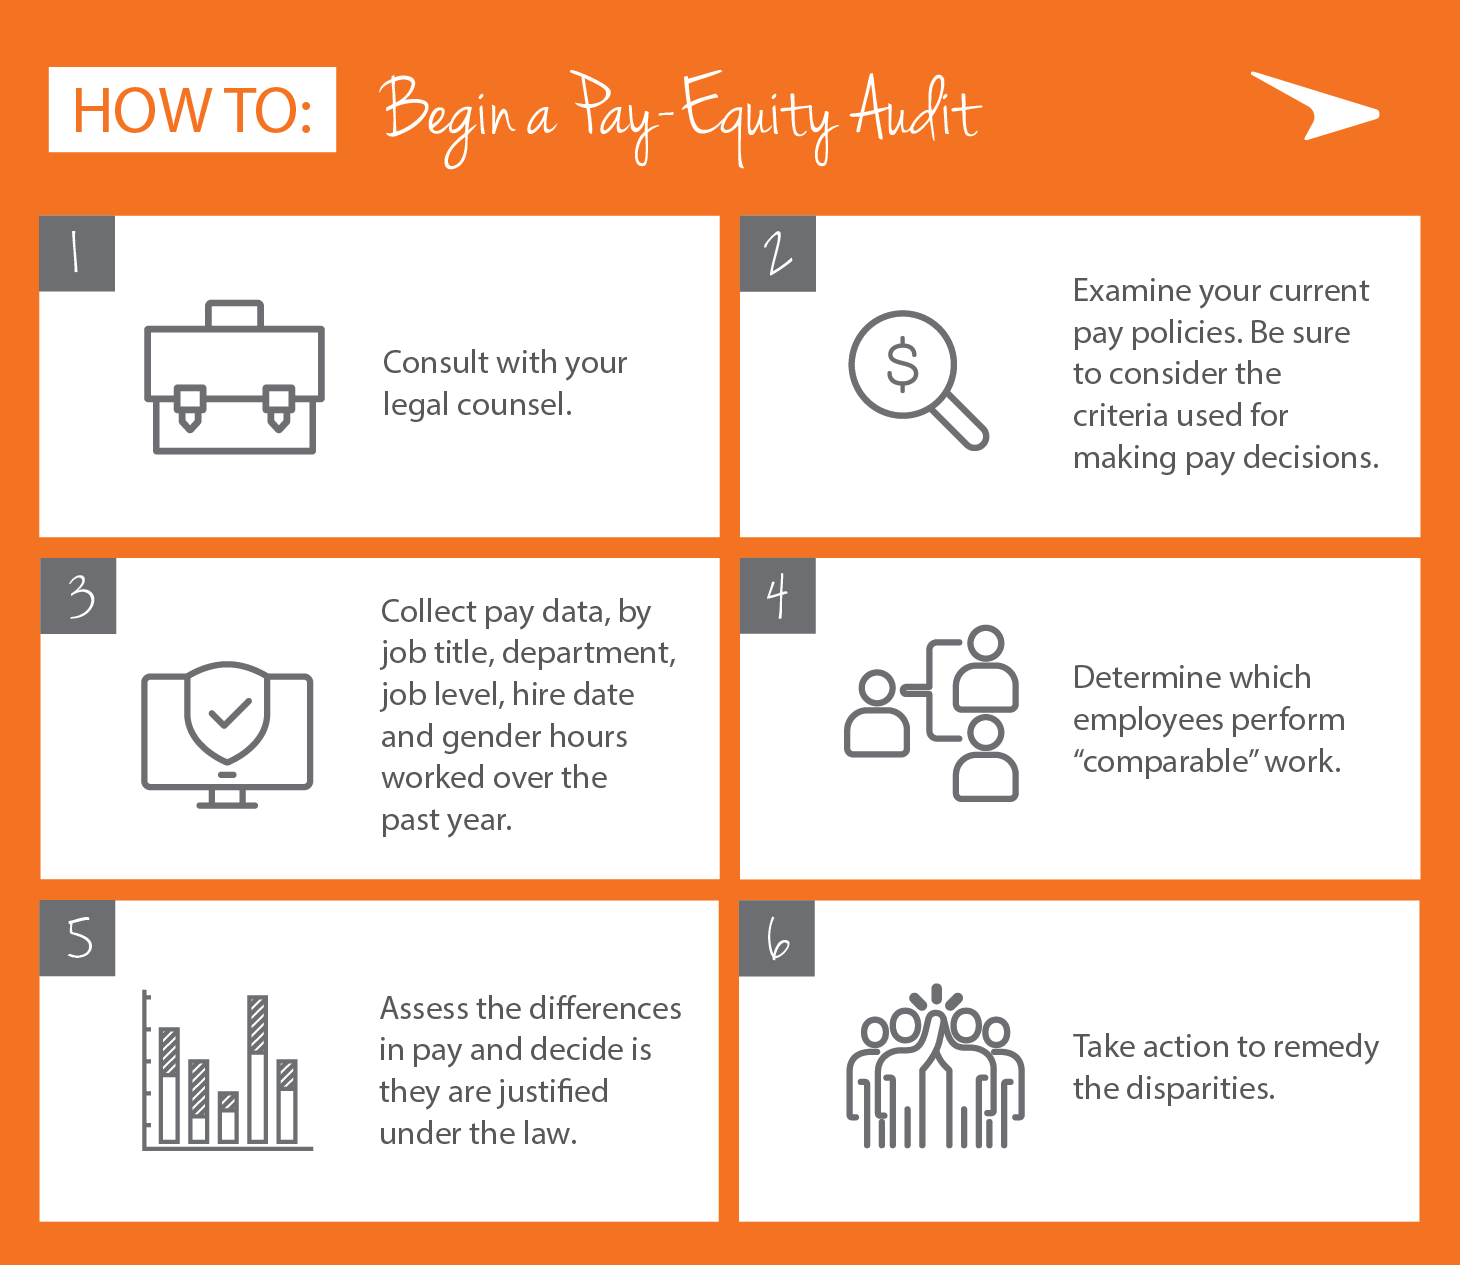 pay-equity-audit-infographic